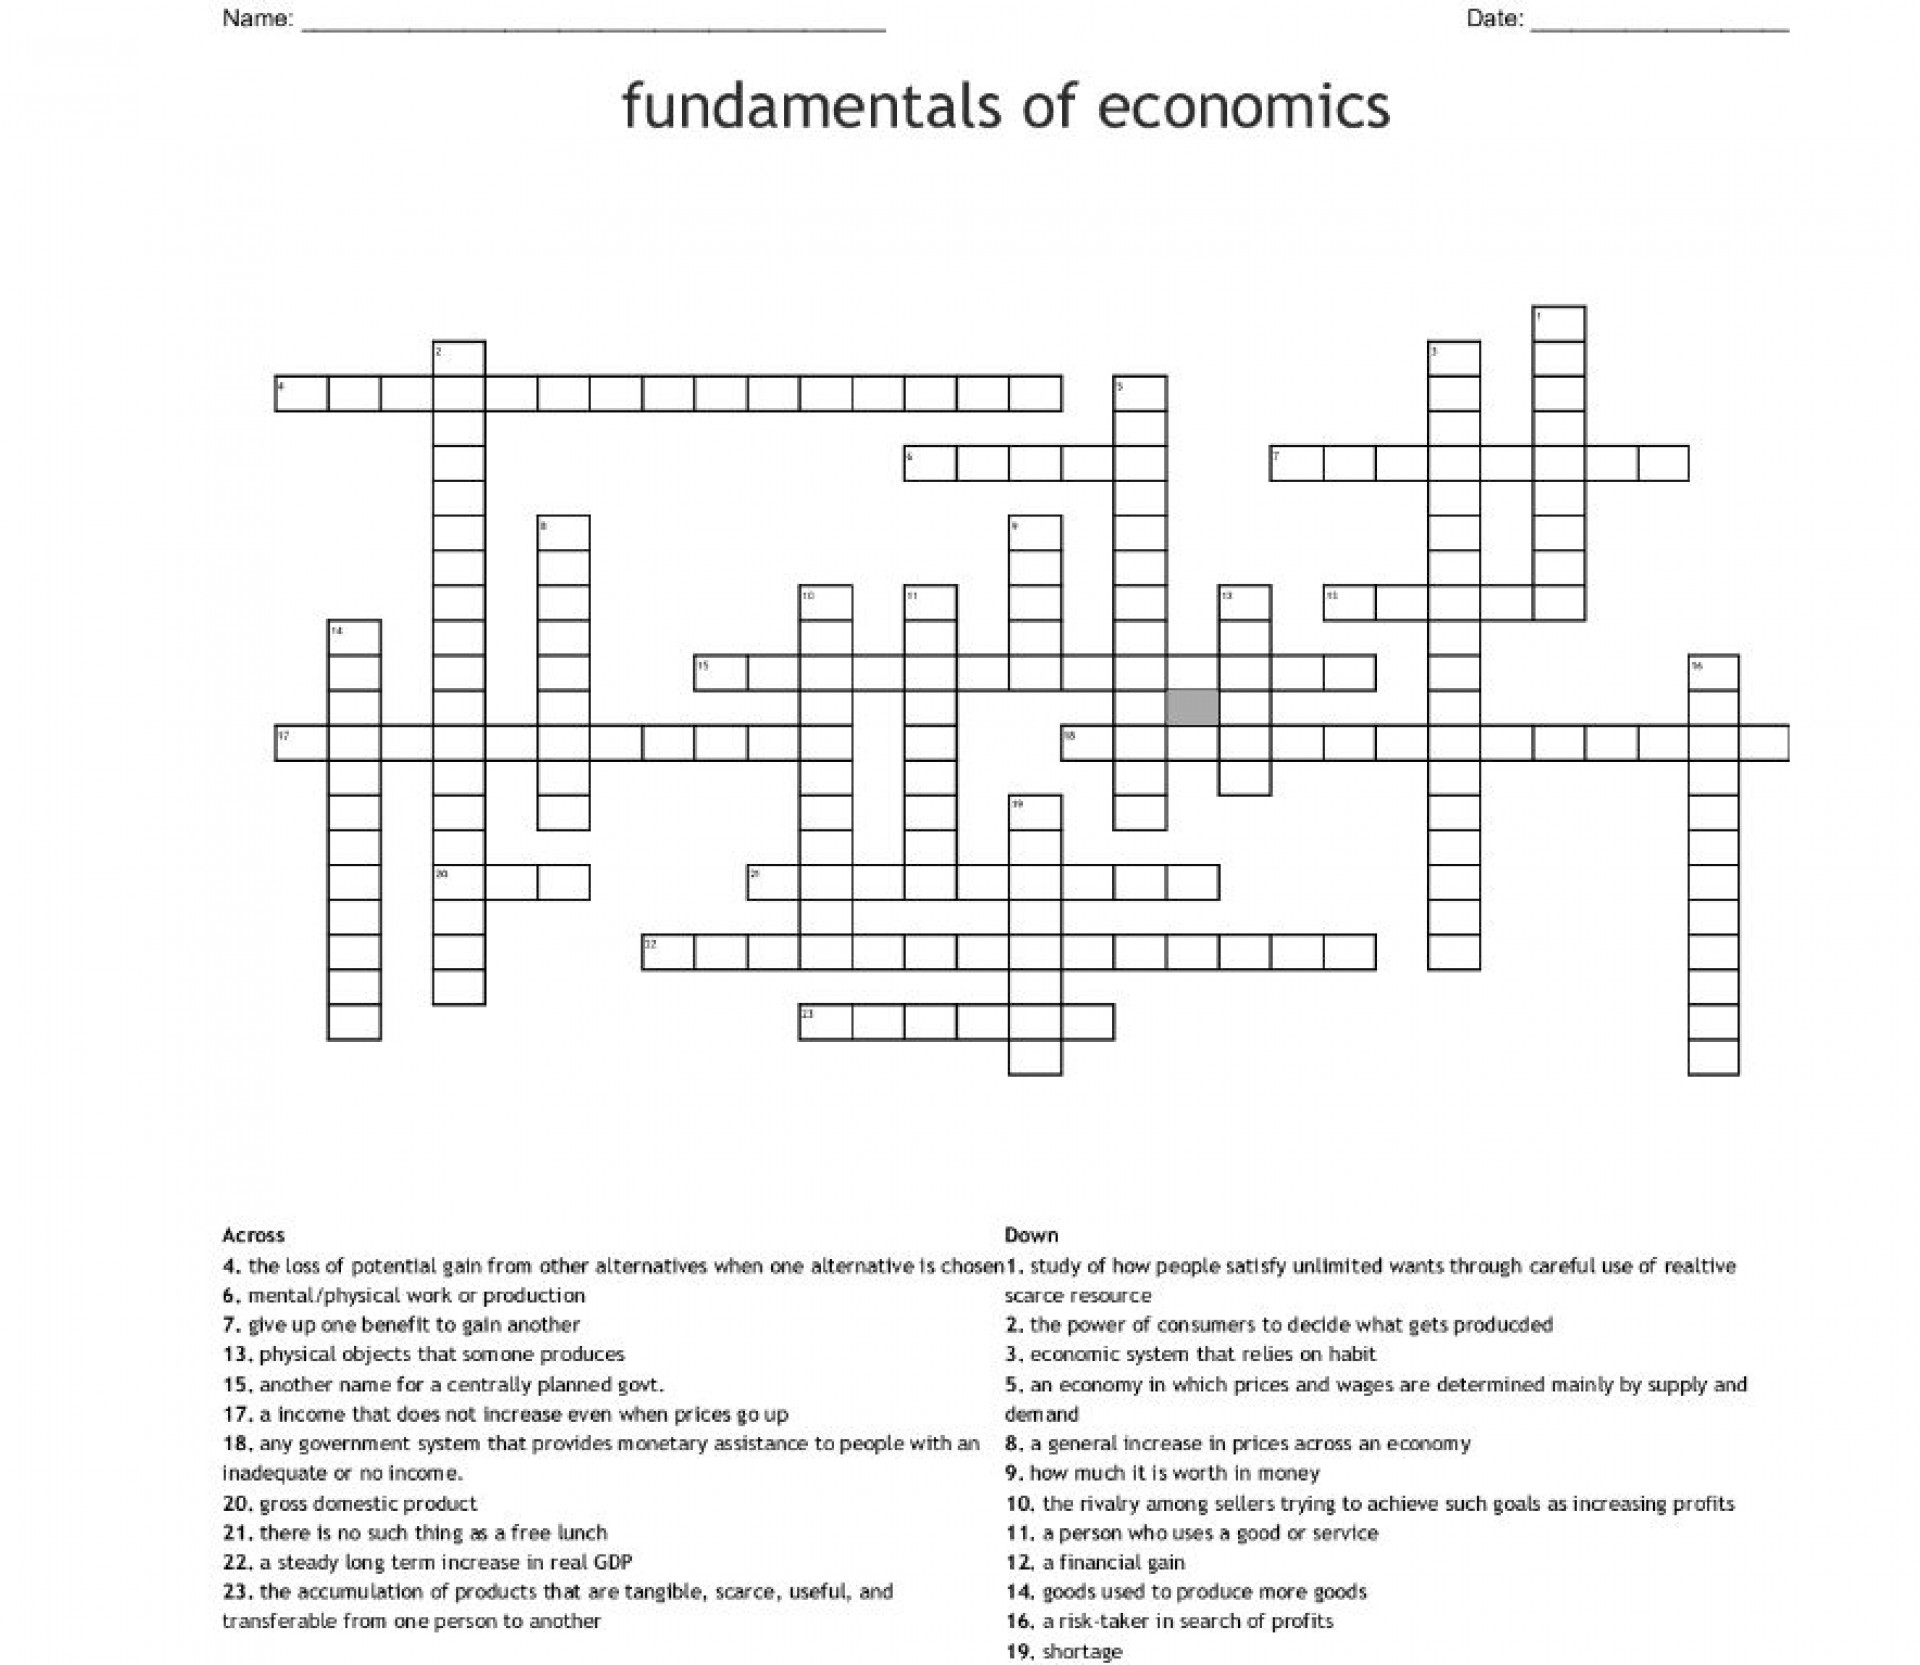 001 Imposing Prosperity Crossword Picture  Hollow Sound Of Sudden Clue Material 7 Letter1920